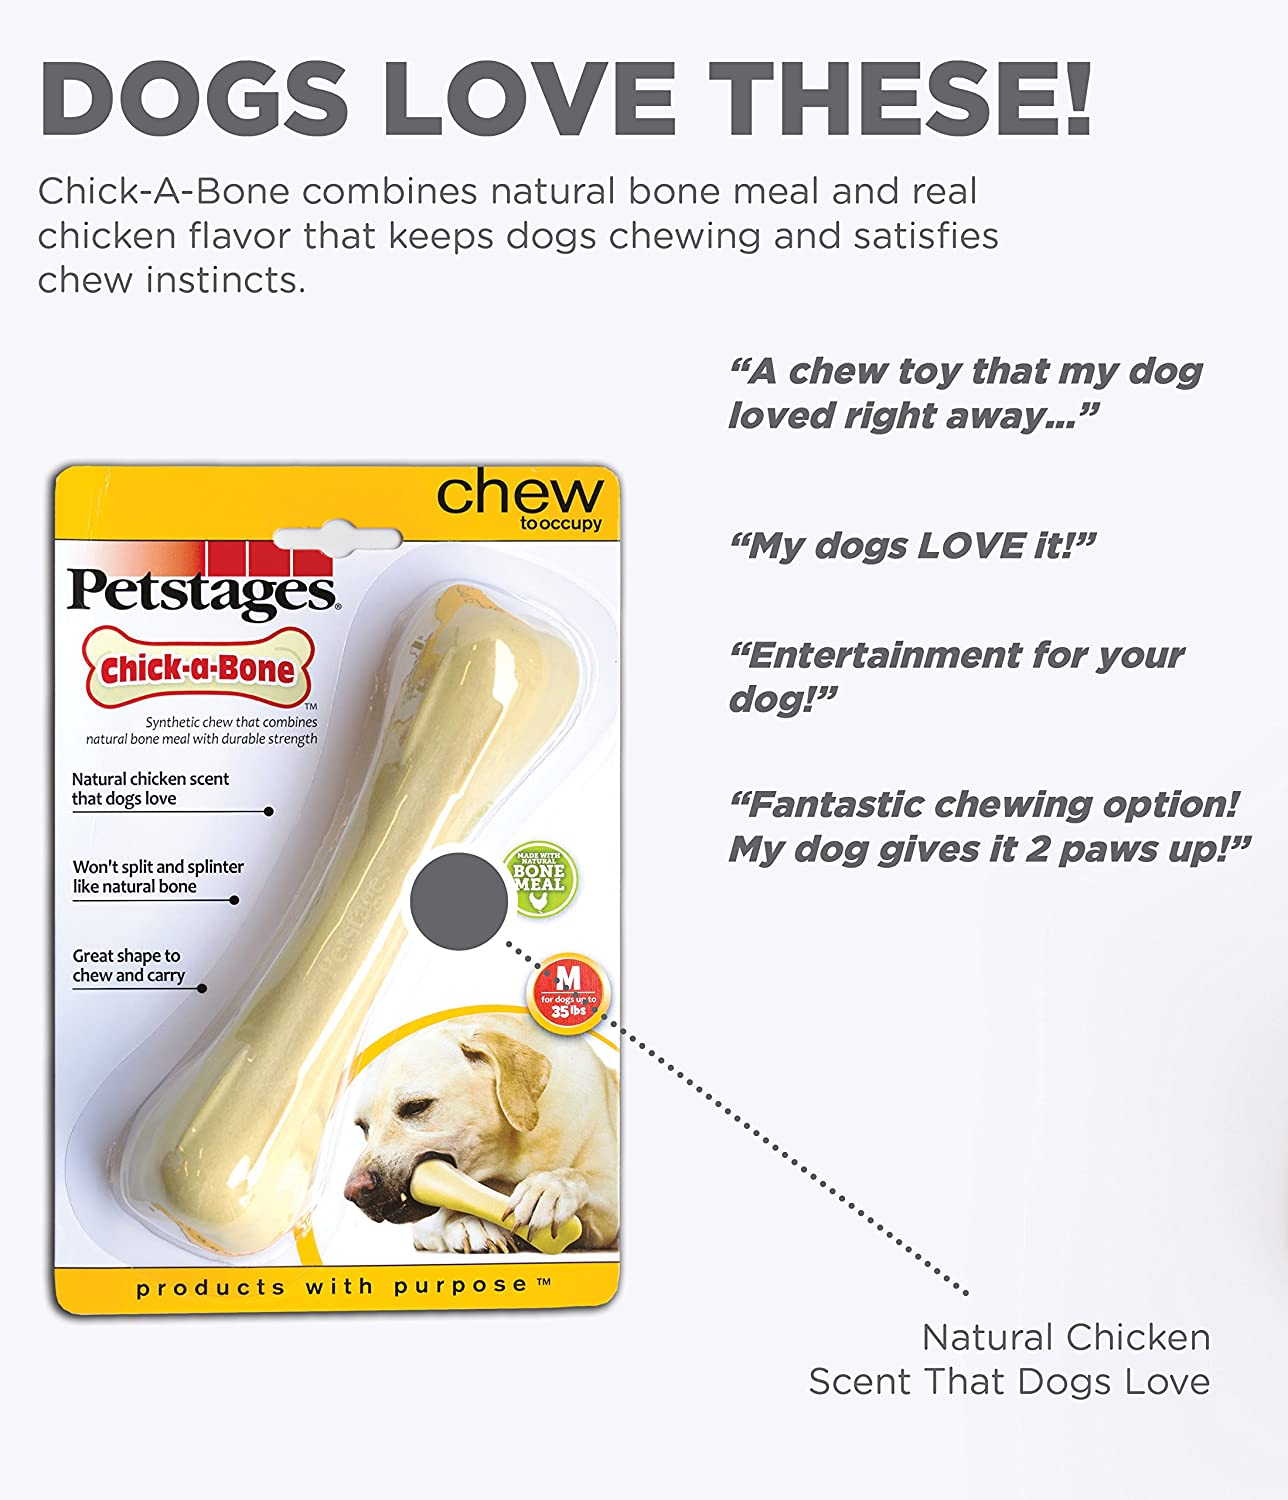 Large Petstages Chick-A-Bone Chicken Flavored Durable Safe Dog Chew Toy